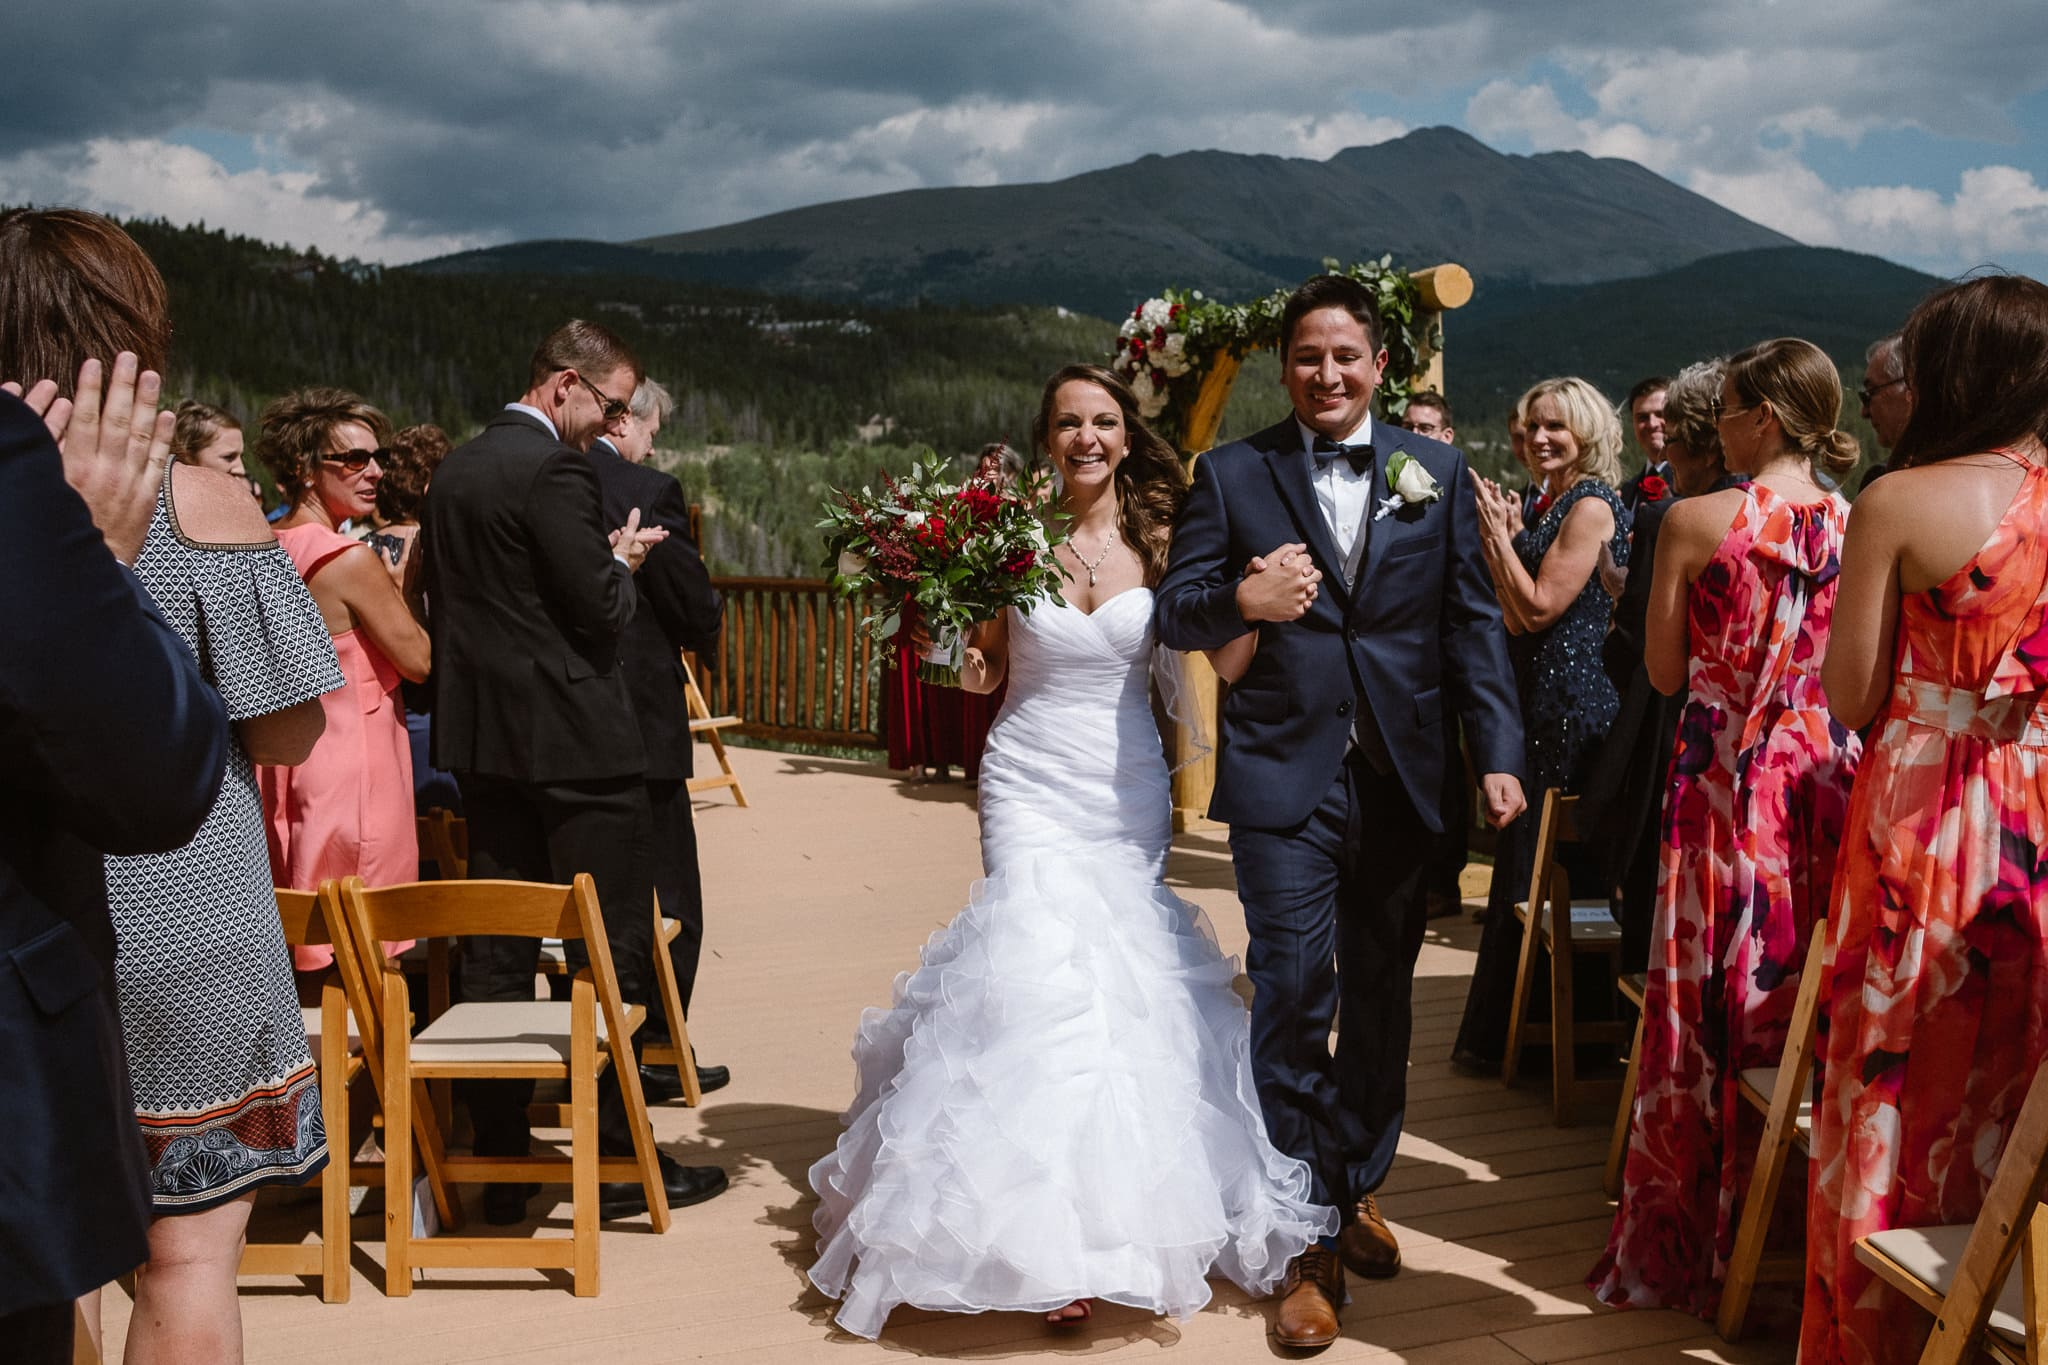 Lodge at Breckenridge Wedding Photographer, Colorado mountain wedding photographer, intimate wedding ceremony on deck with mountain views, bride and groom celebrating, recessional